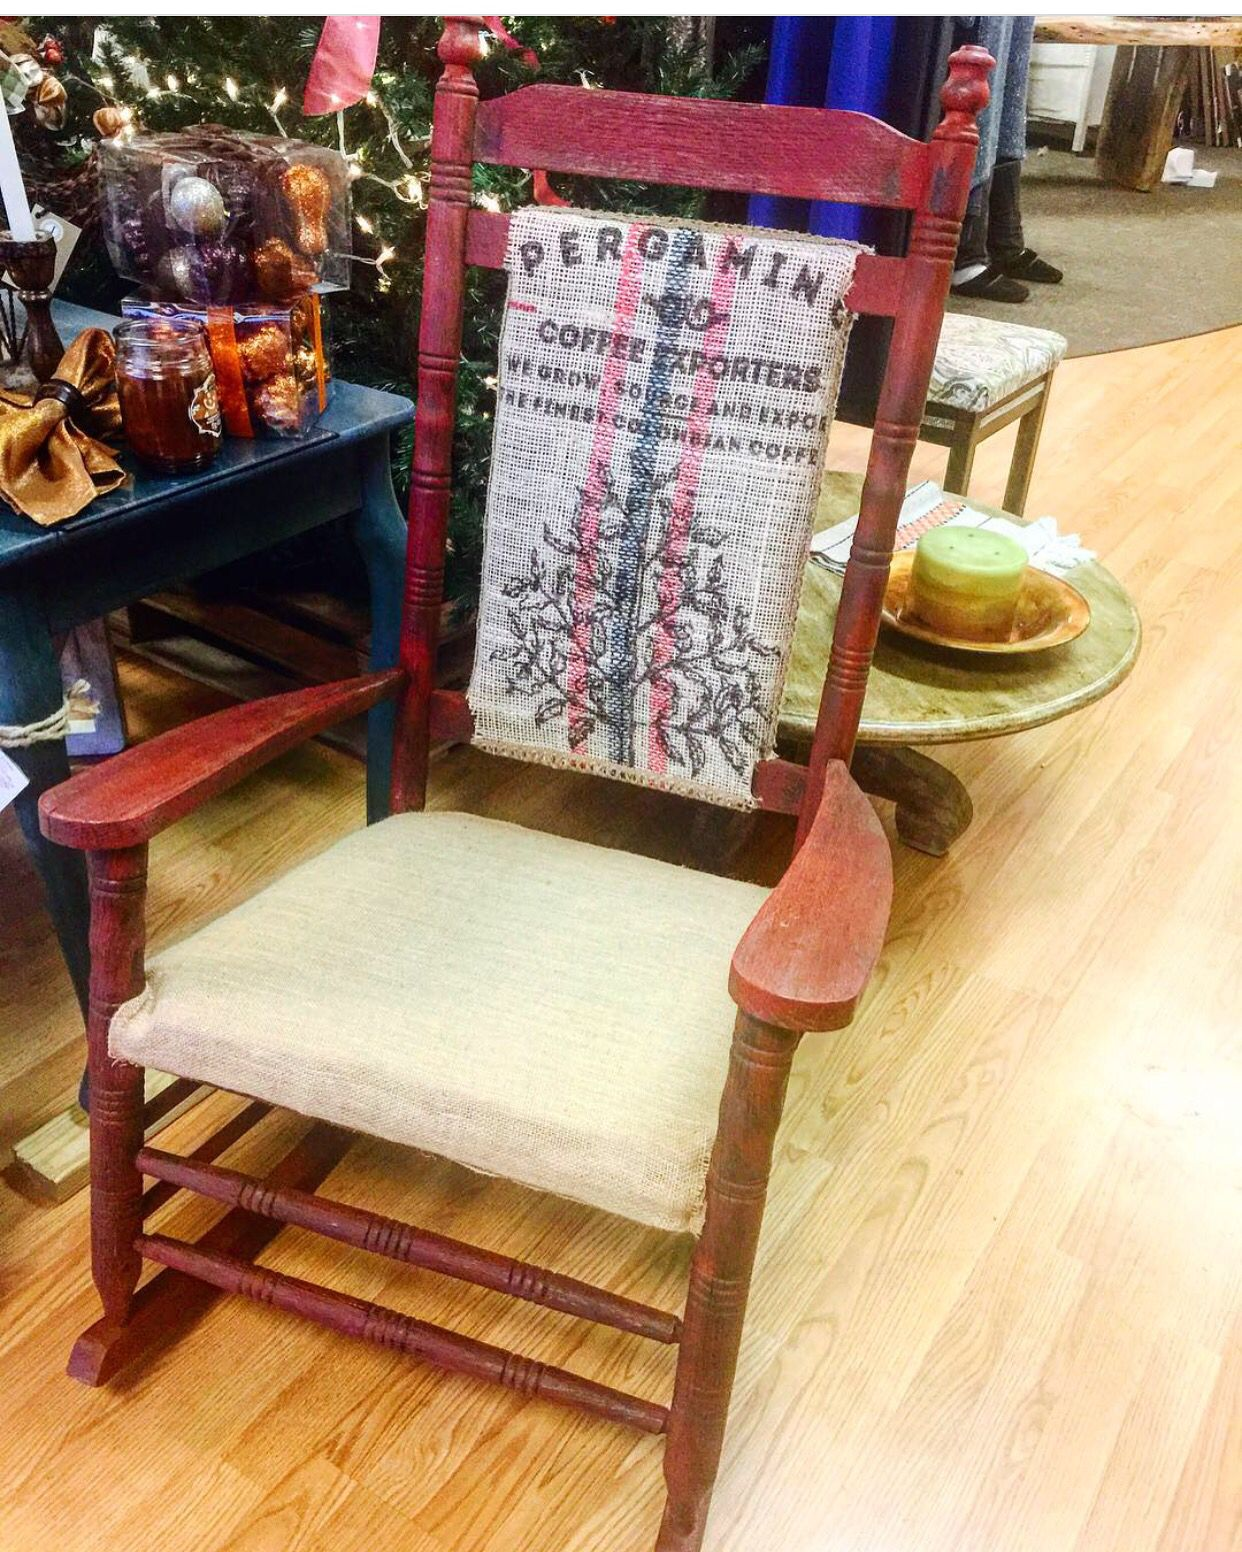 Throw Back Thursday!  One of Jayney's favorite designs our Rustic Barn Red Burlap Rocker last Christmas!  #throwbackthursday #tbt #christmasinjuly #jayneysdesign #coffeebag #vintage #upcycled#handcrafted#gorgous#nashvillesesjgn#nashvilleartist#rustic#country#shabbychic https://www.facebook.com/jayneysdesign/posts/778921285578148:0